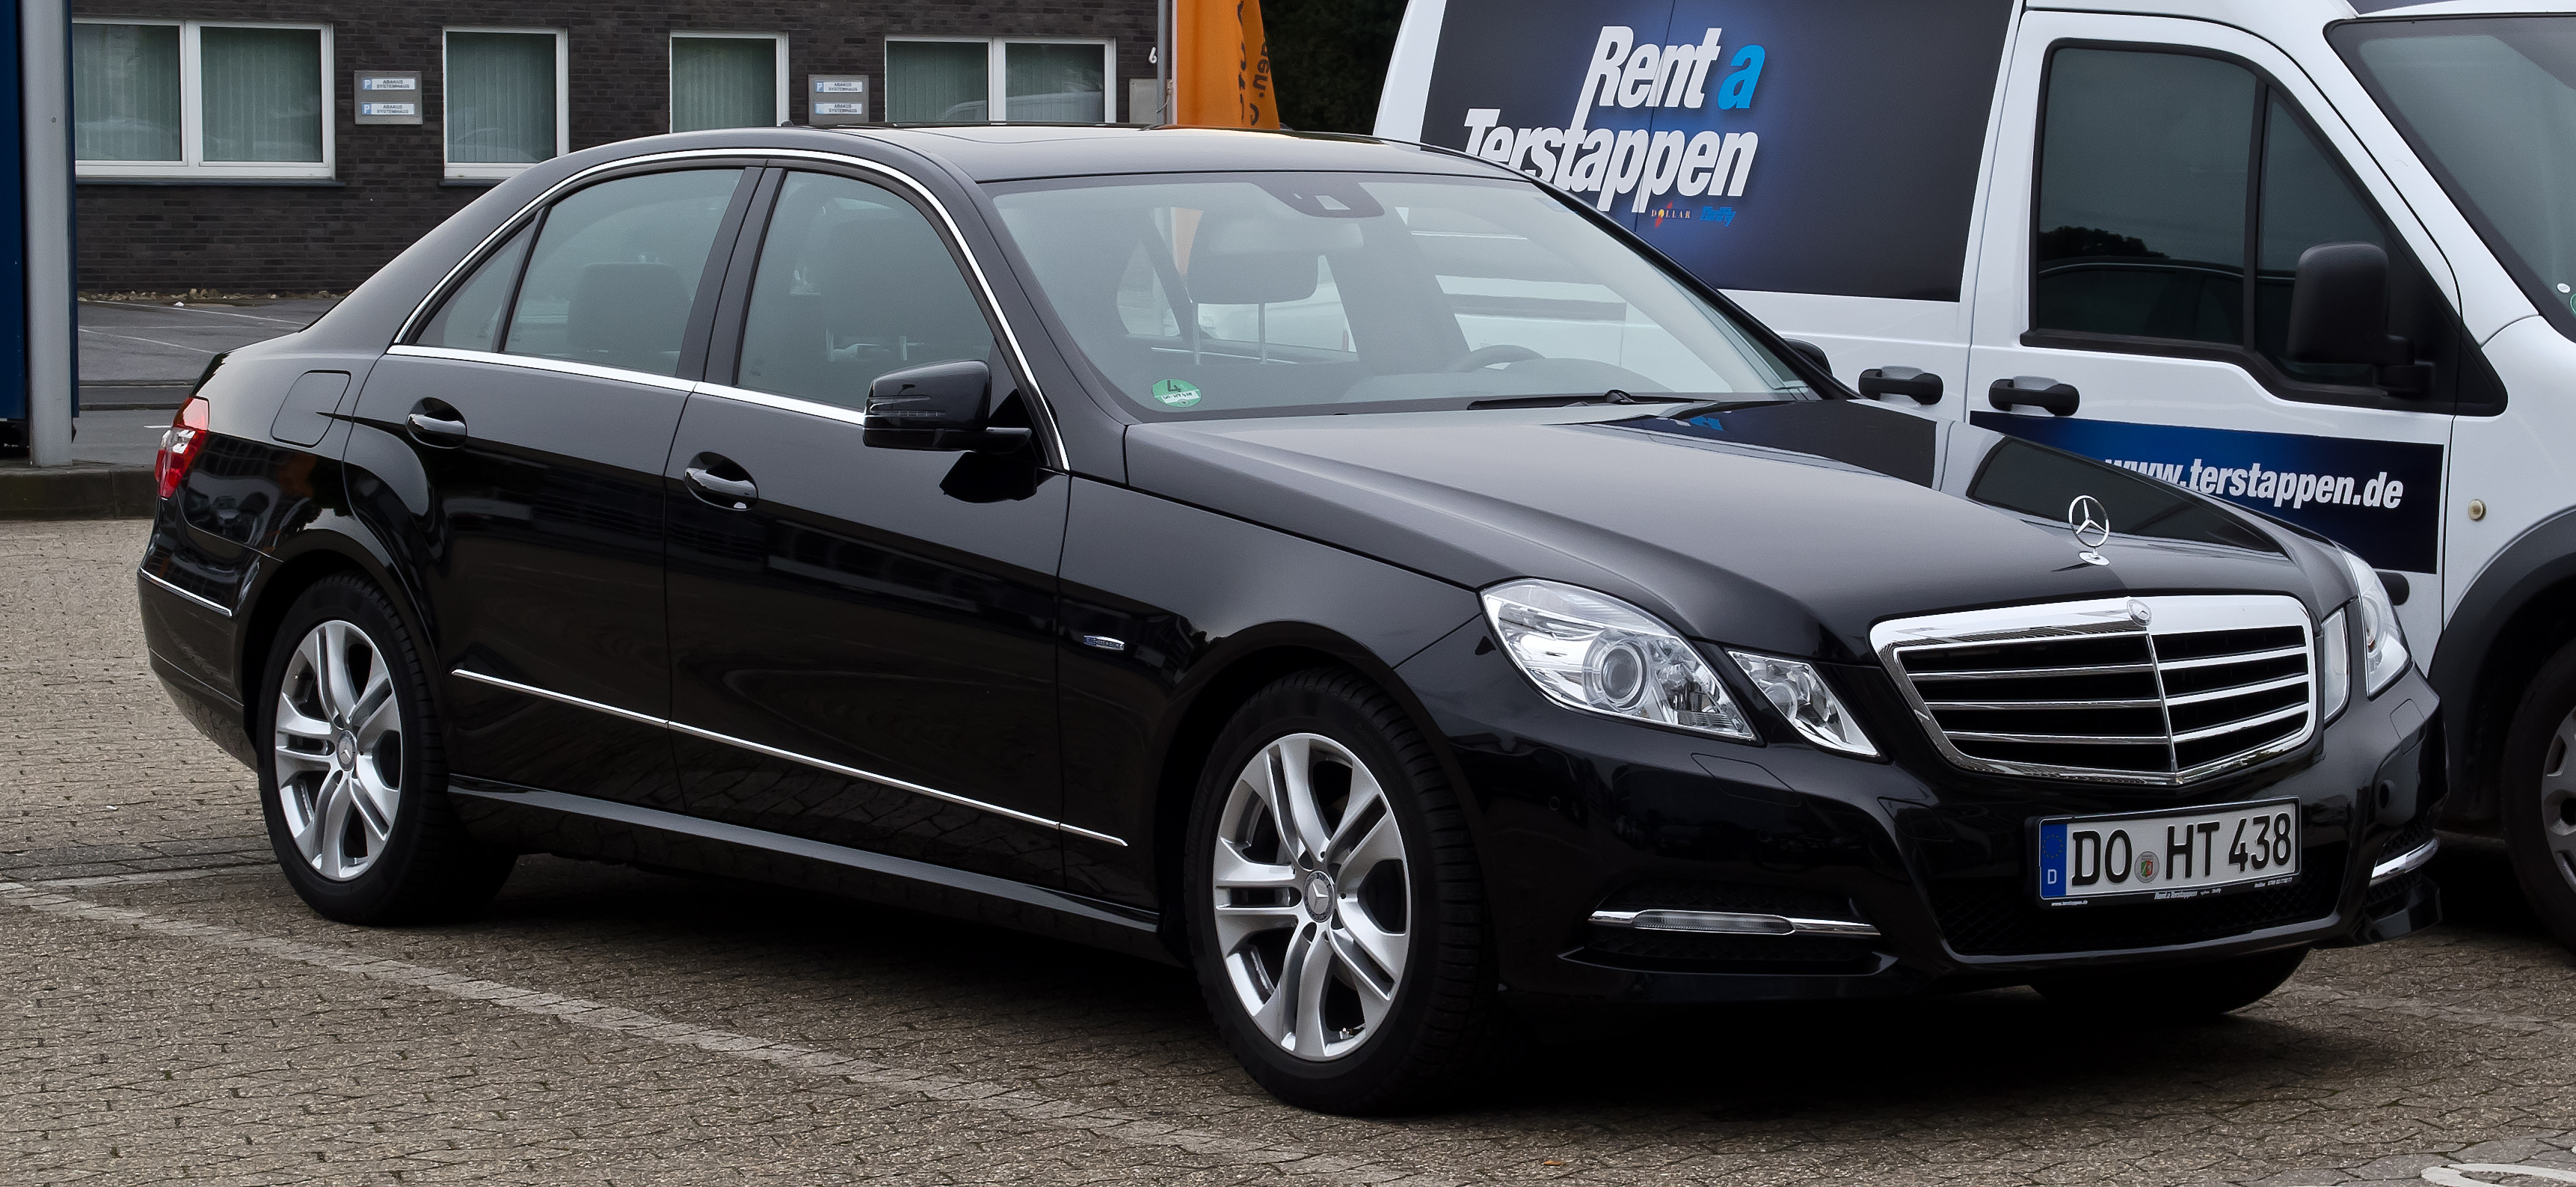 File mercedes benz e 200 blueefficiency avantgarde w 212 for Mercedes benz avantgarde